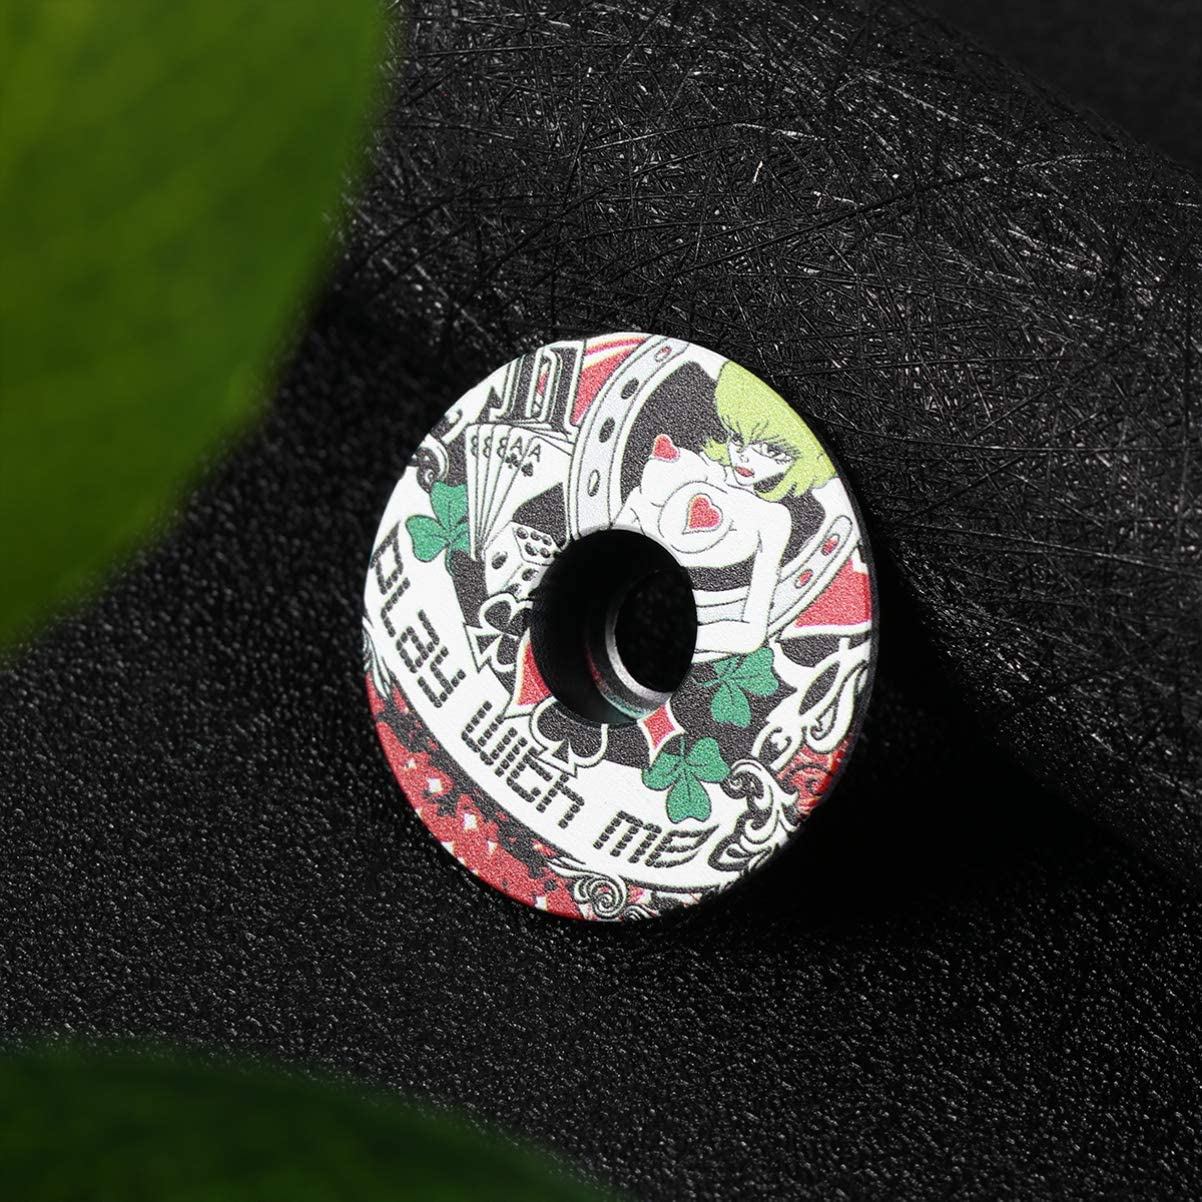 BESPORTBLE Bike Stem Cap Bicycle Headset Cap Alloy Headset Top Cap Stem Cover Bike Supplies for MTB Mountain Bicycle